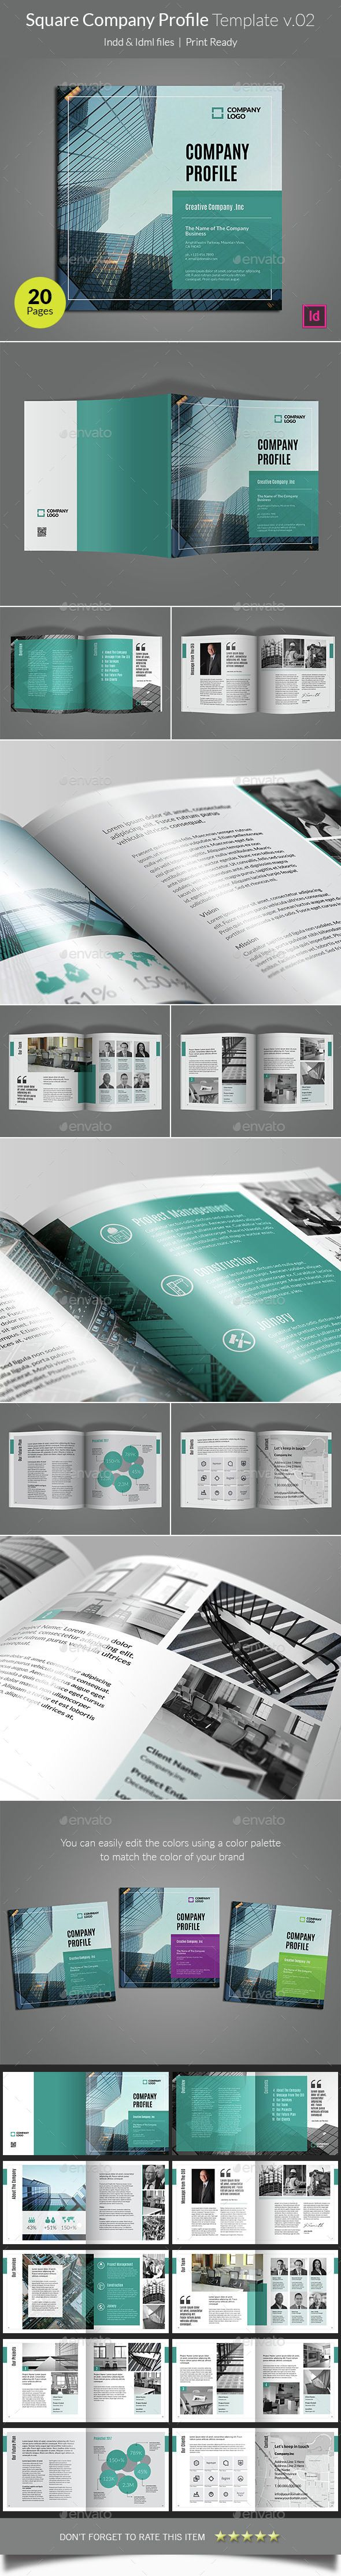 Company Profile Template V02 - Corporate Brochures